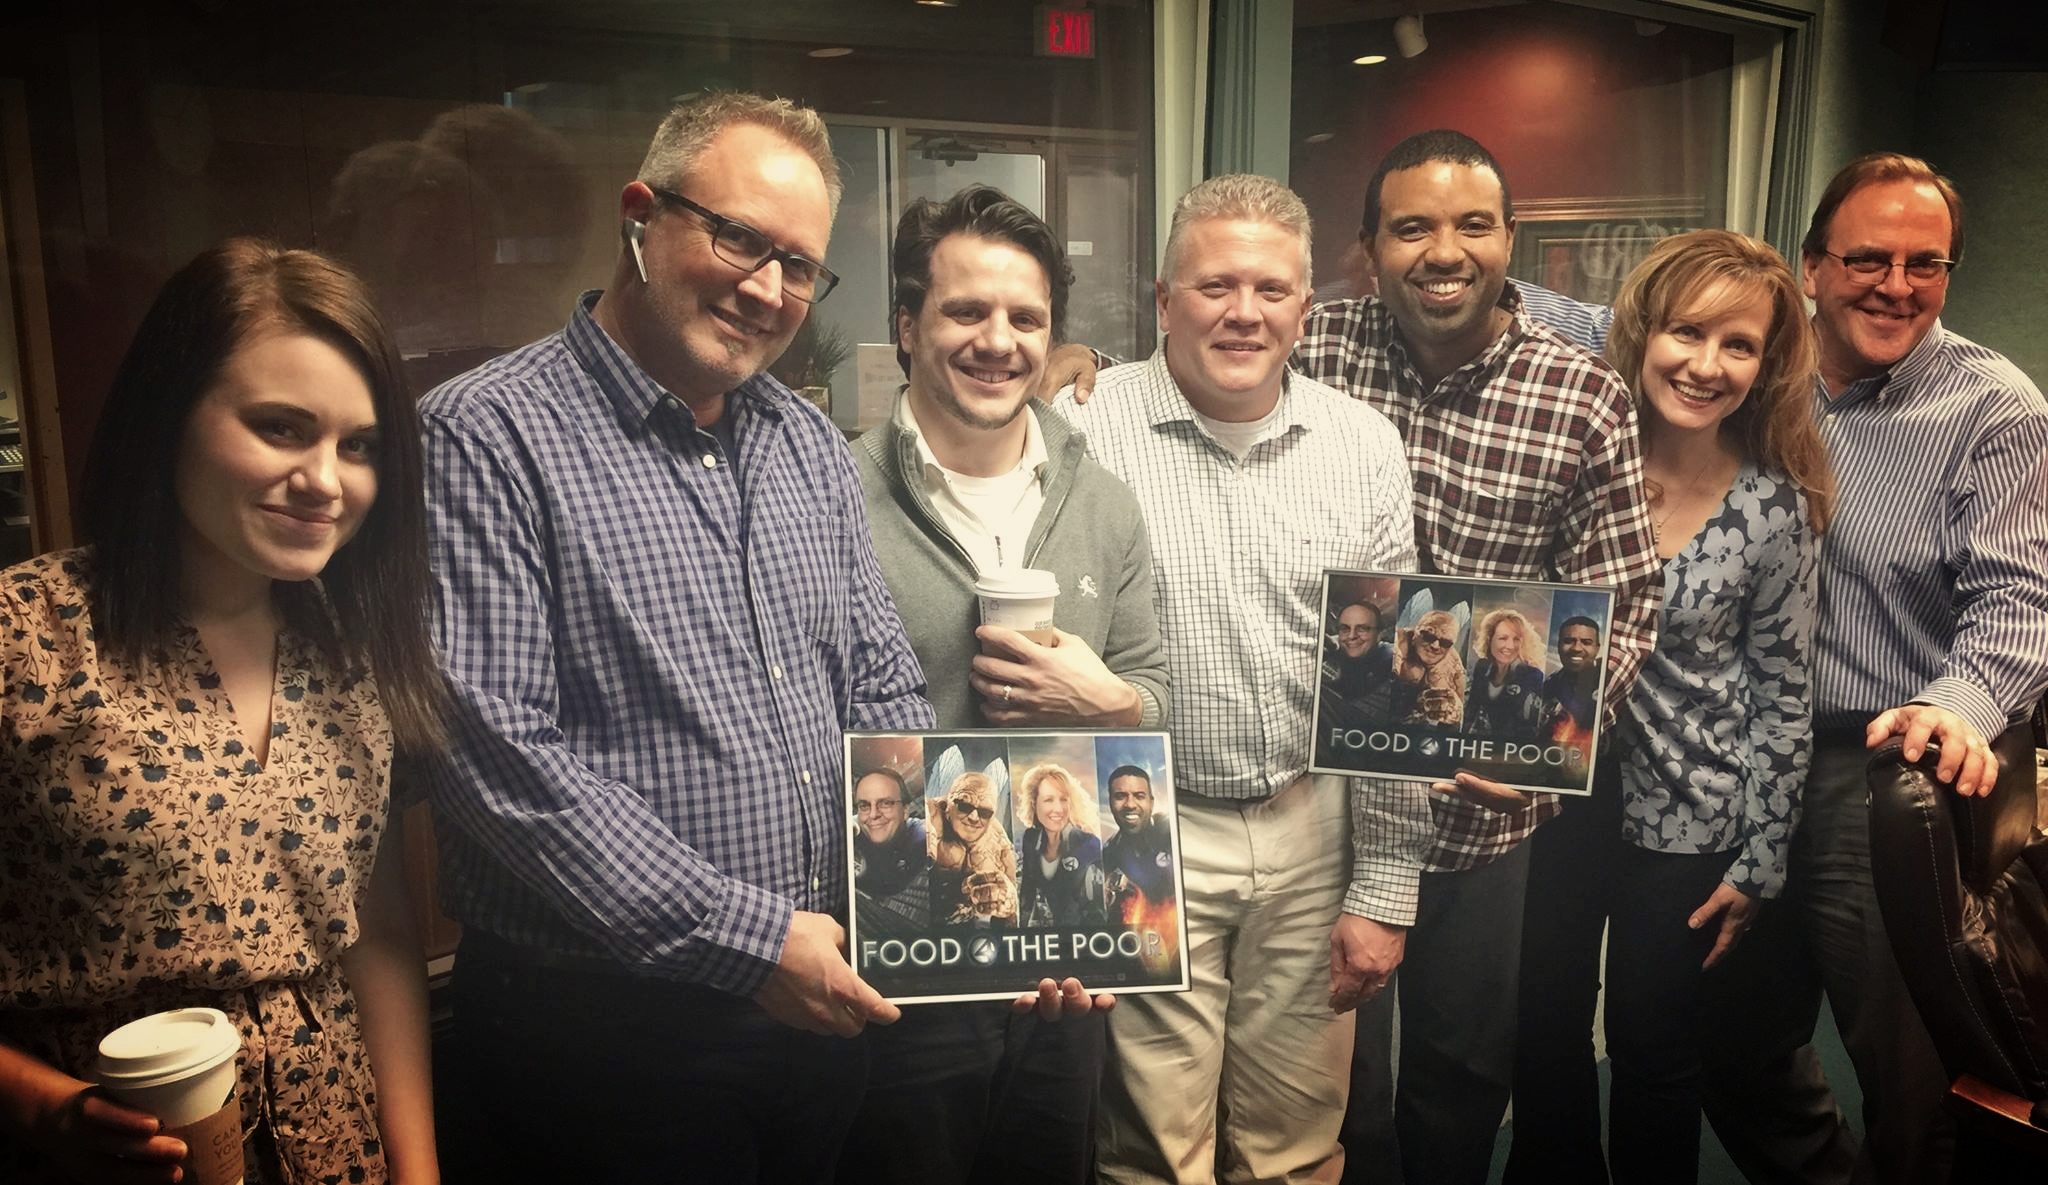 with Todd Chatman & Paul Jacobs from Food for the Poor, plus David Pienaar and Tom Lemmon, WORDfm (2015)